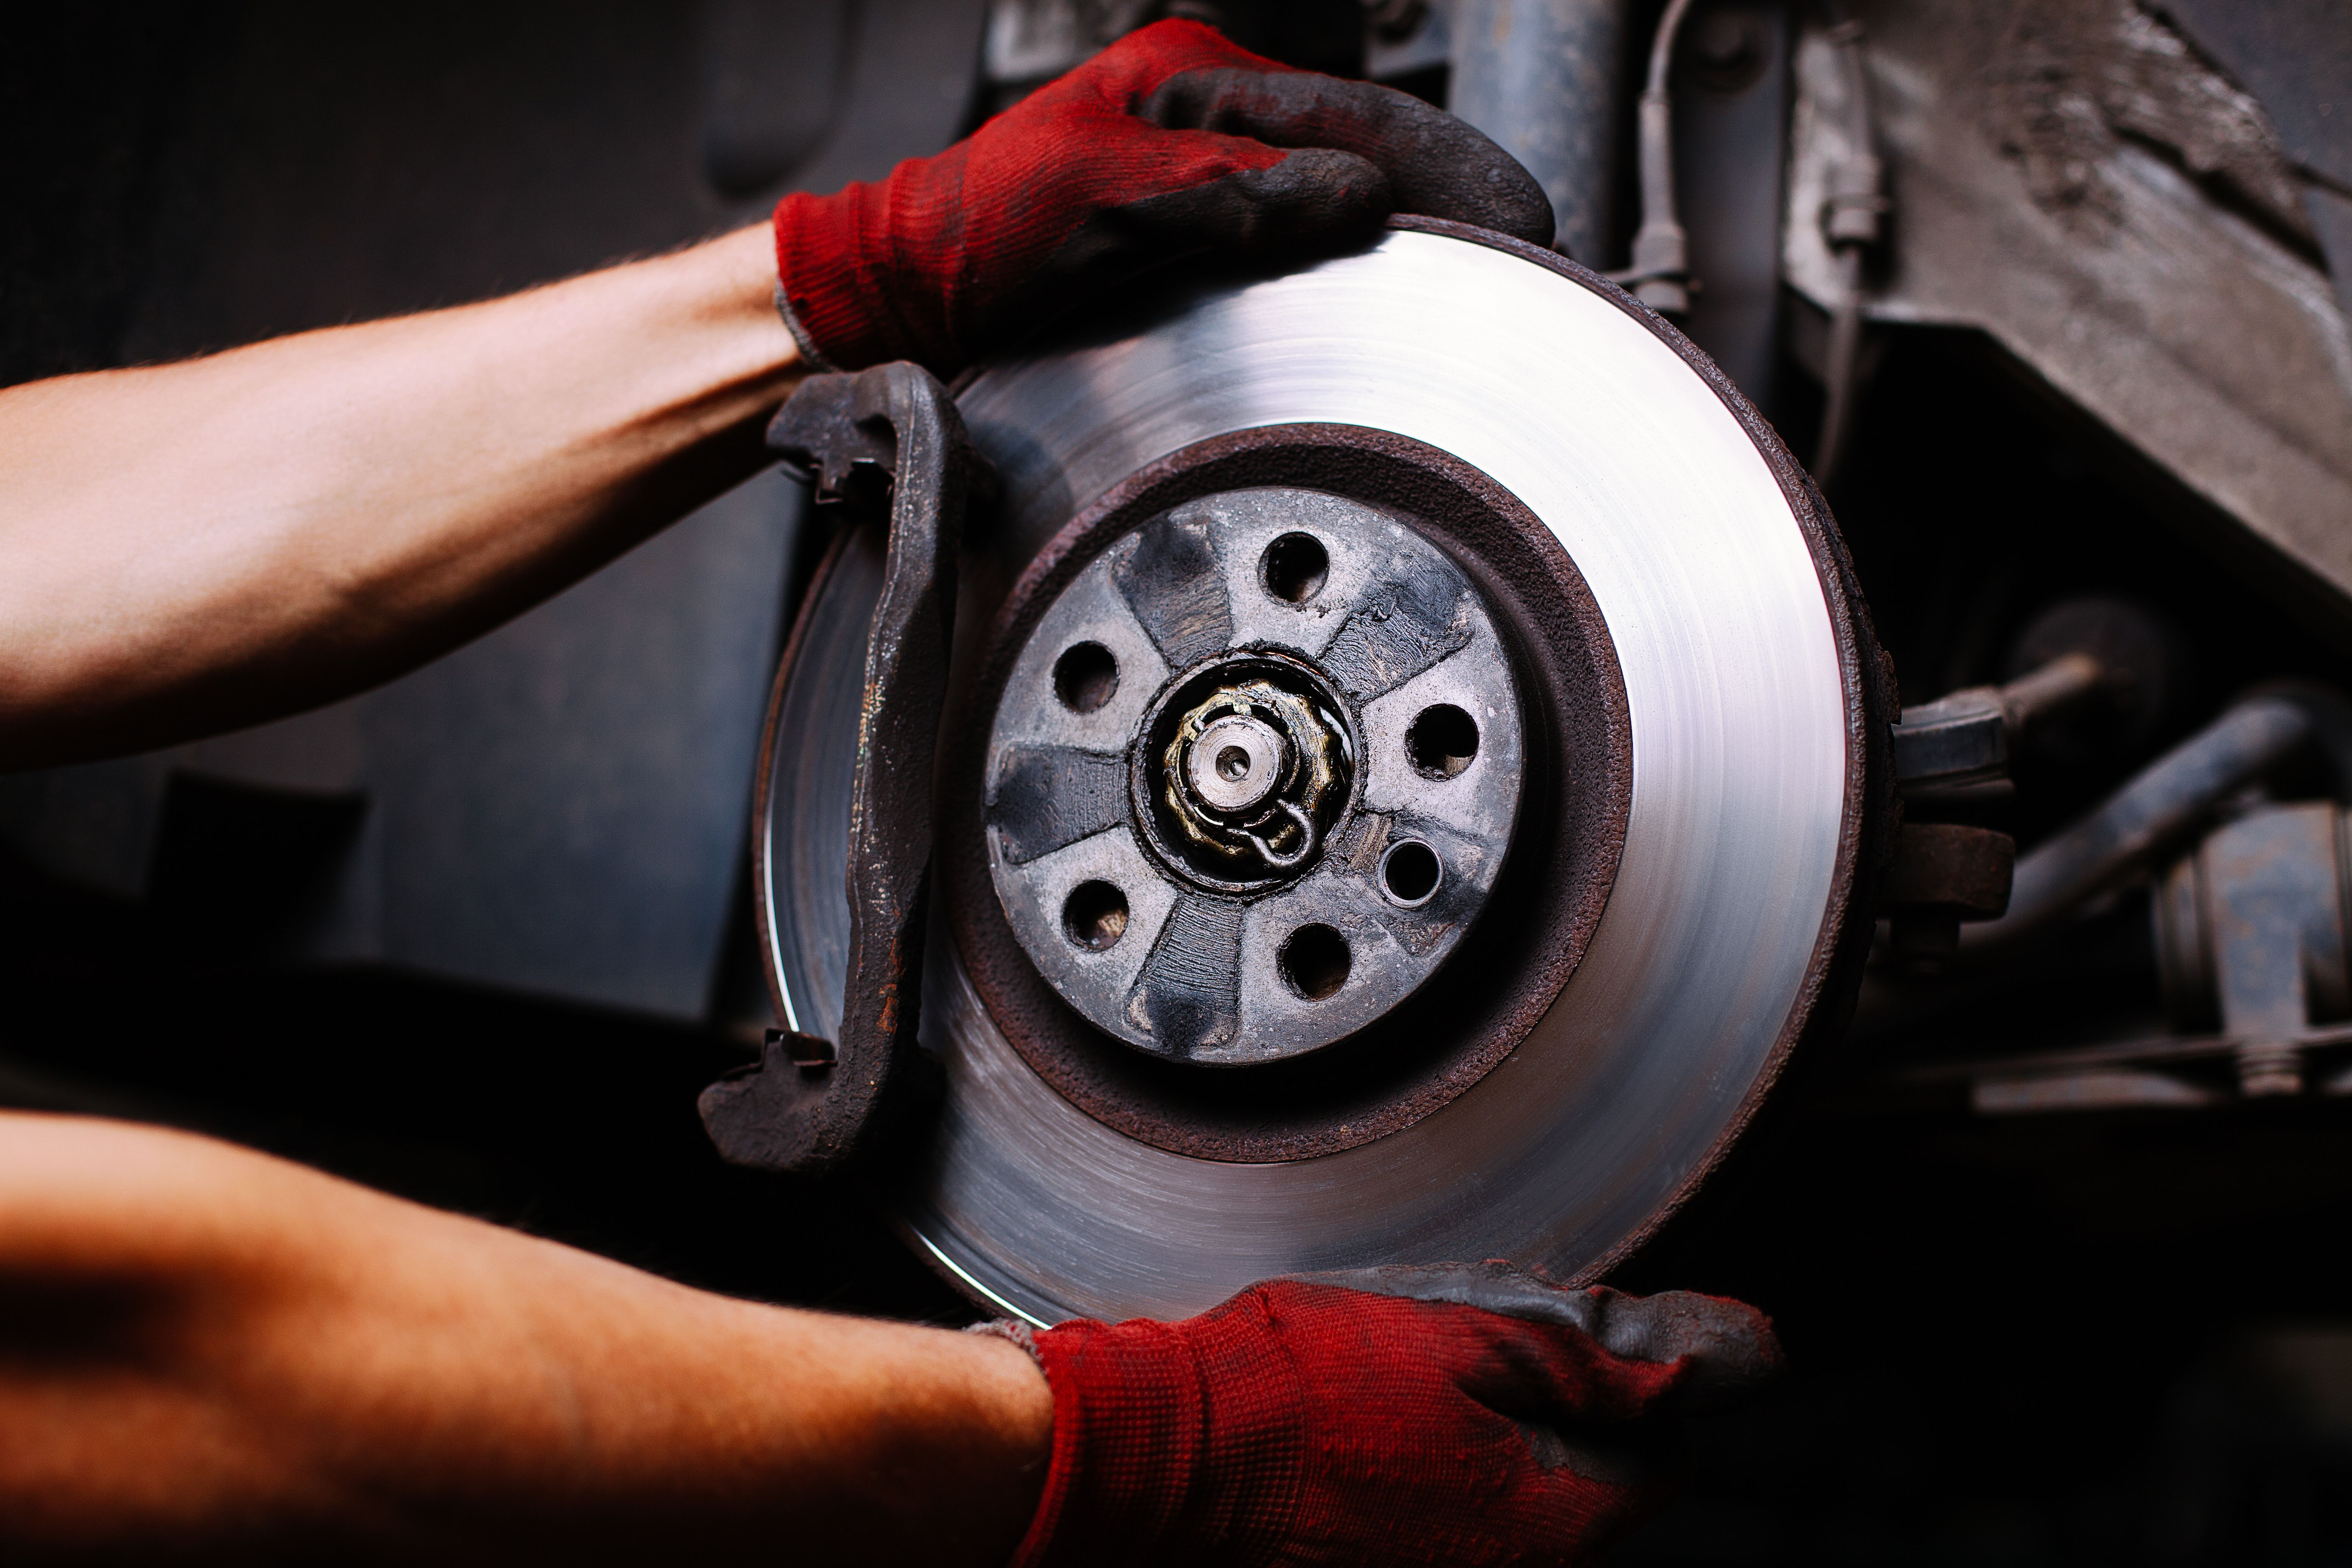 shutterstock_148283300 Brakes & Clutches